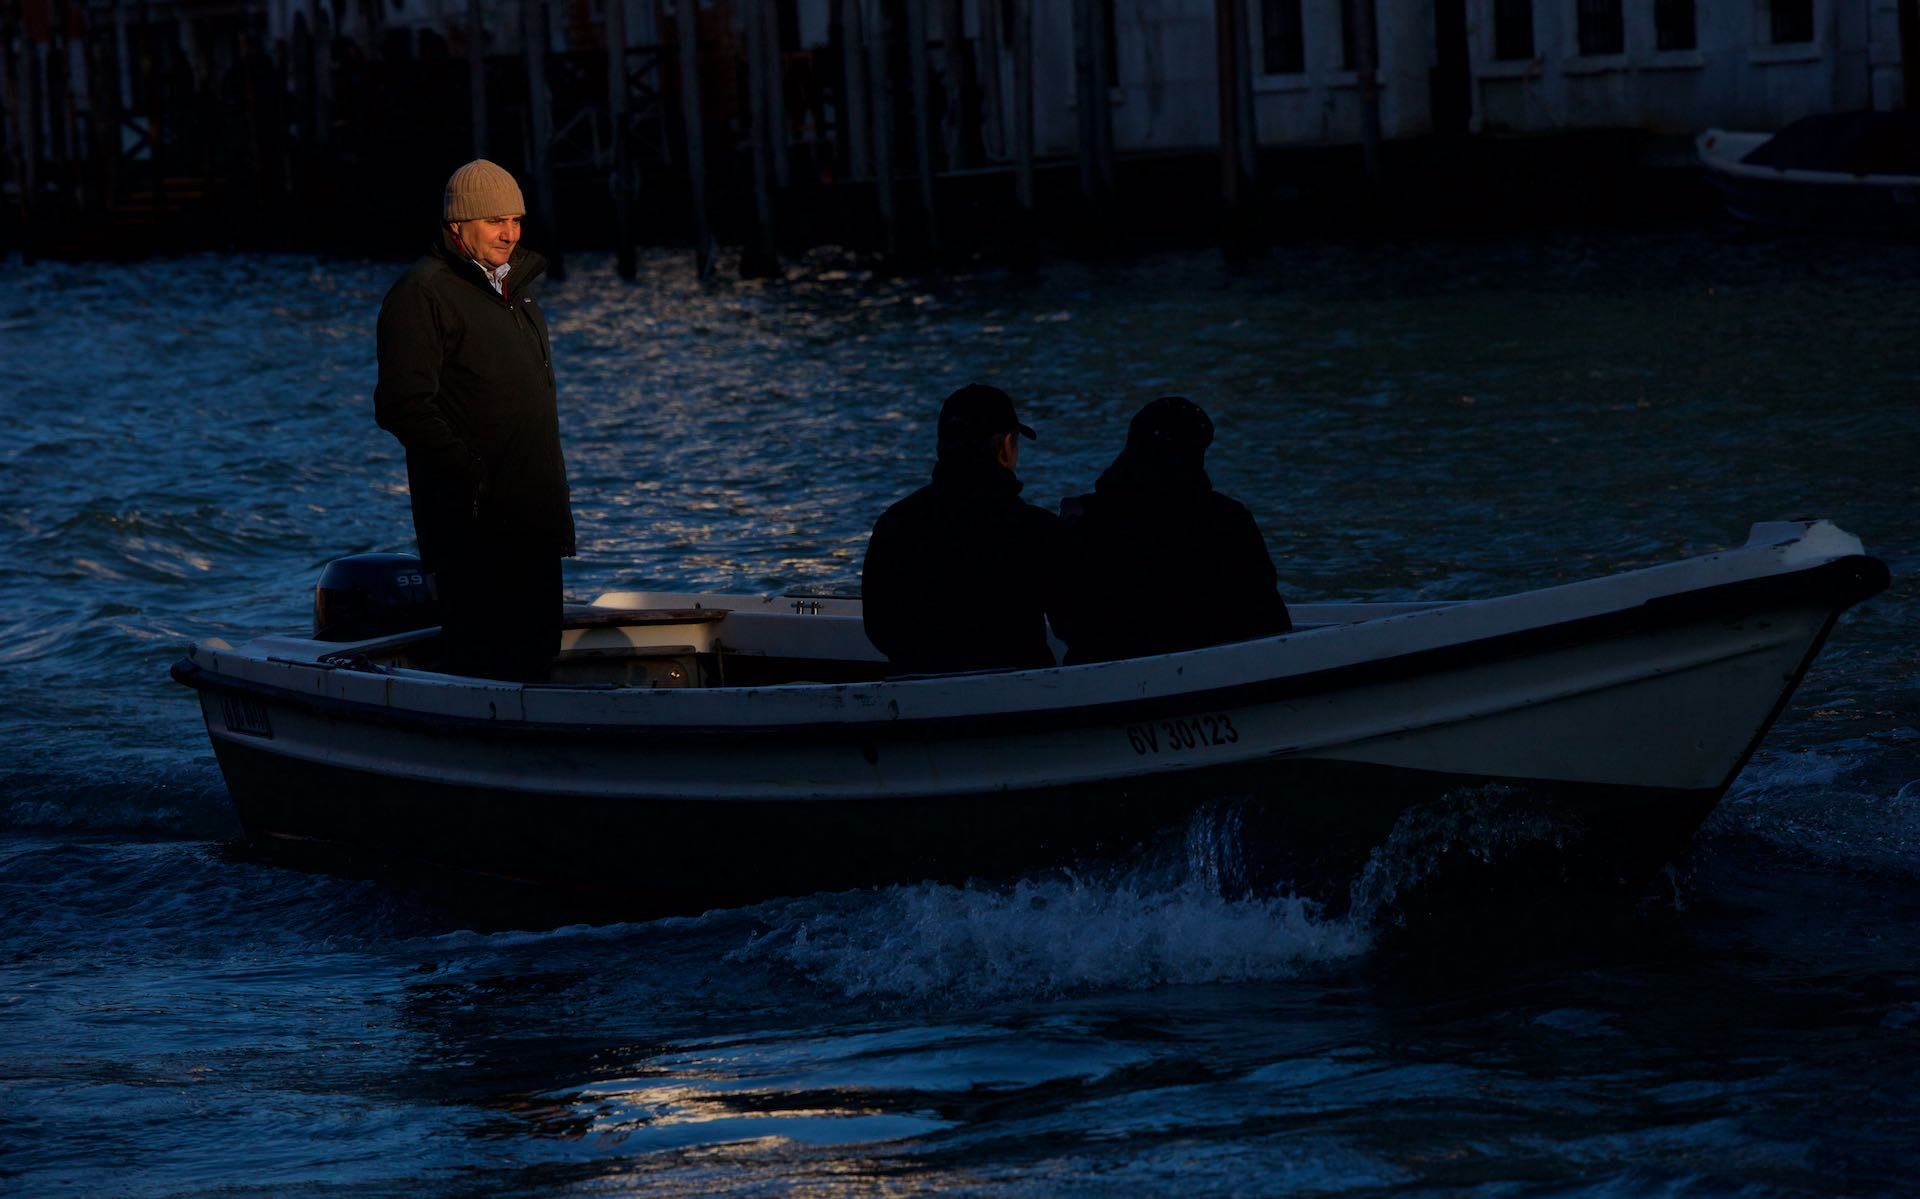 At the End of the Day, Venice